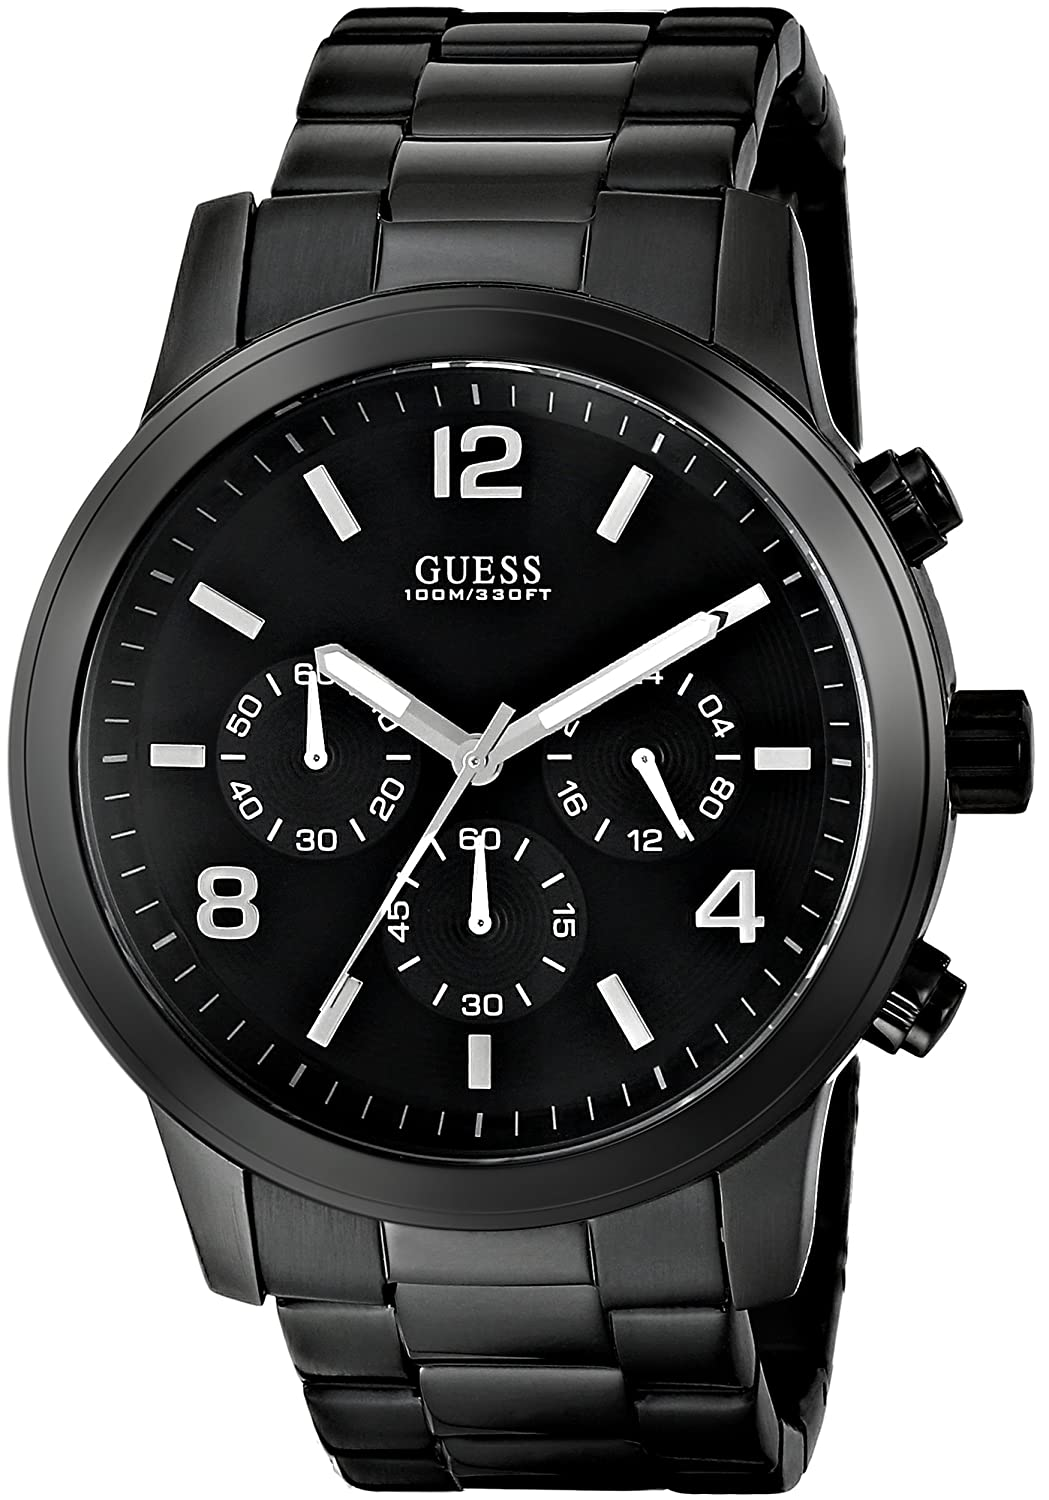 amazon com guess men s u15061g1 sporty black stainless steel amazon com guess men s u15061g1 sporty black stainless steel watch chronograph dial and deployment buckle guess watches watches